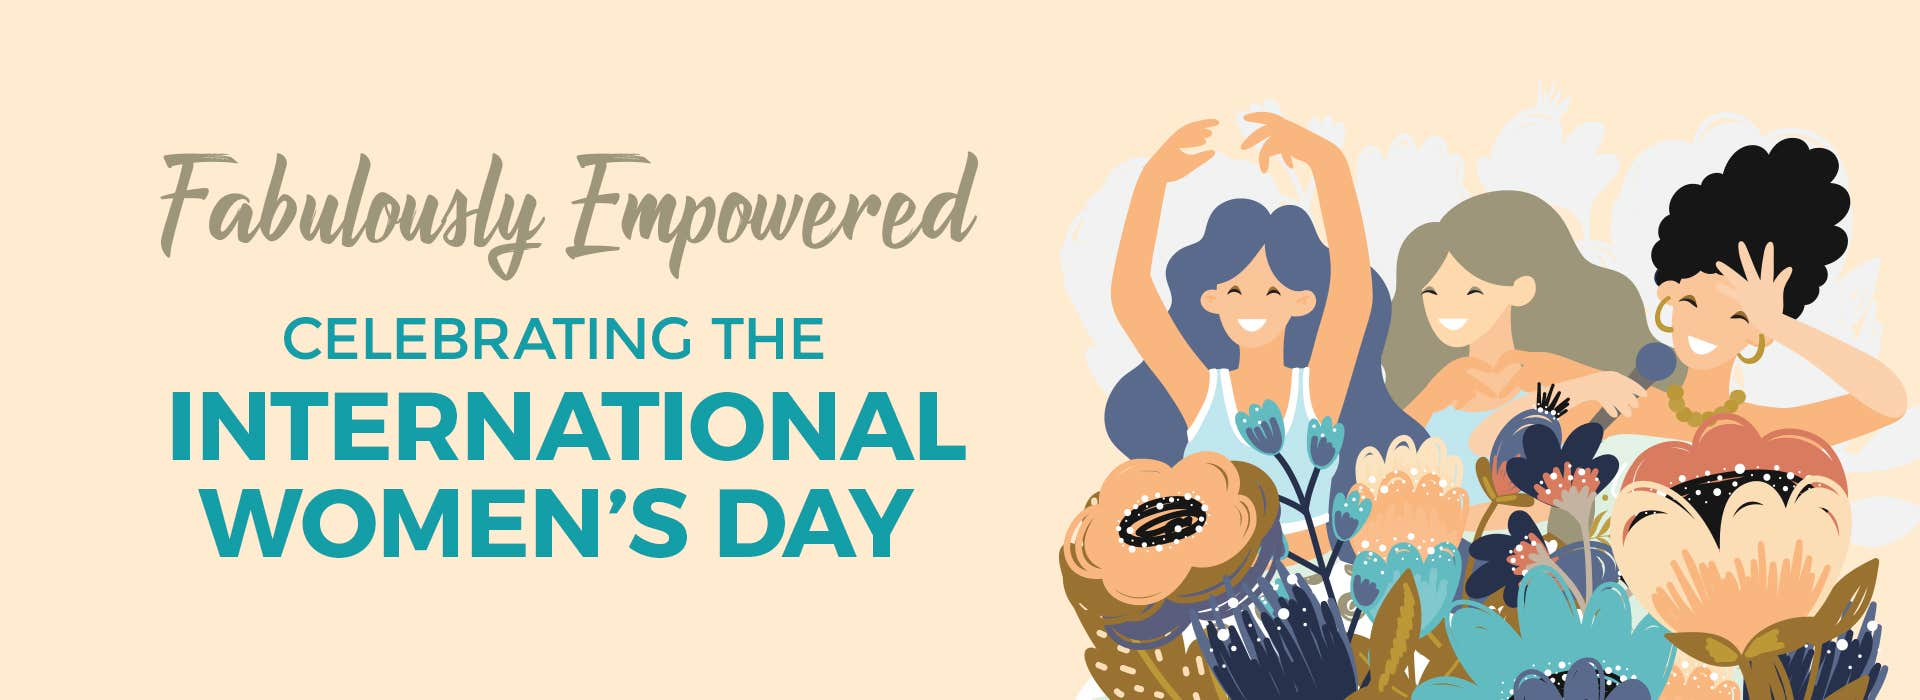 Fabulously Empowered: Celebrating The International Women's Day